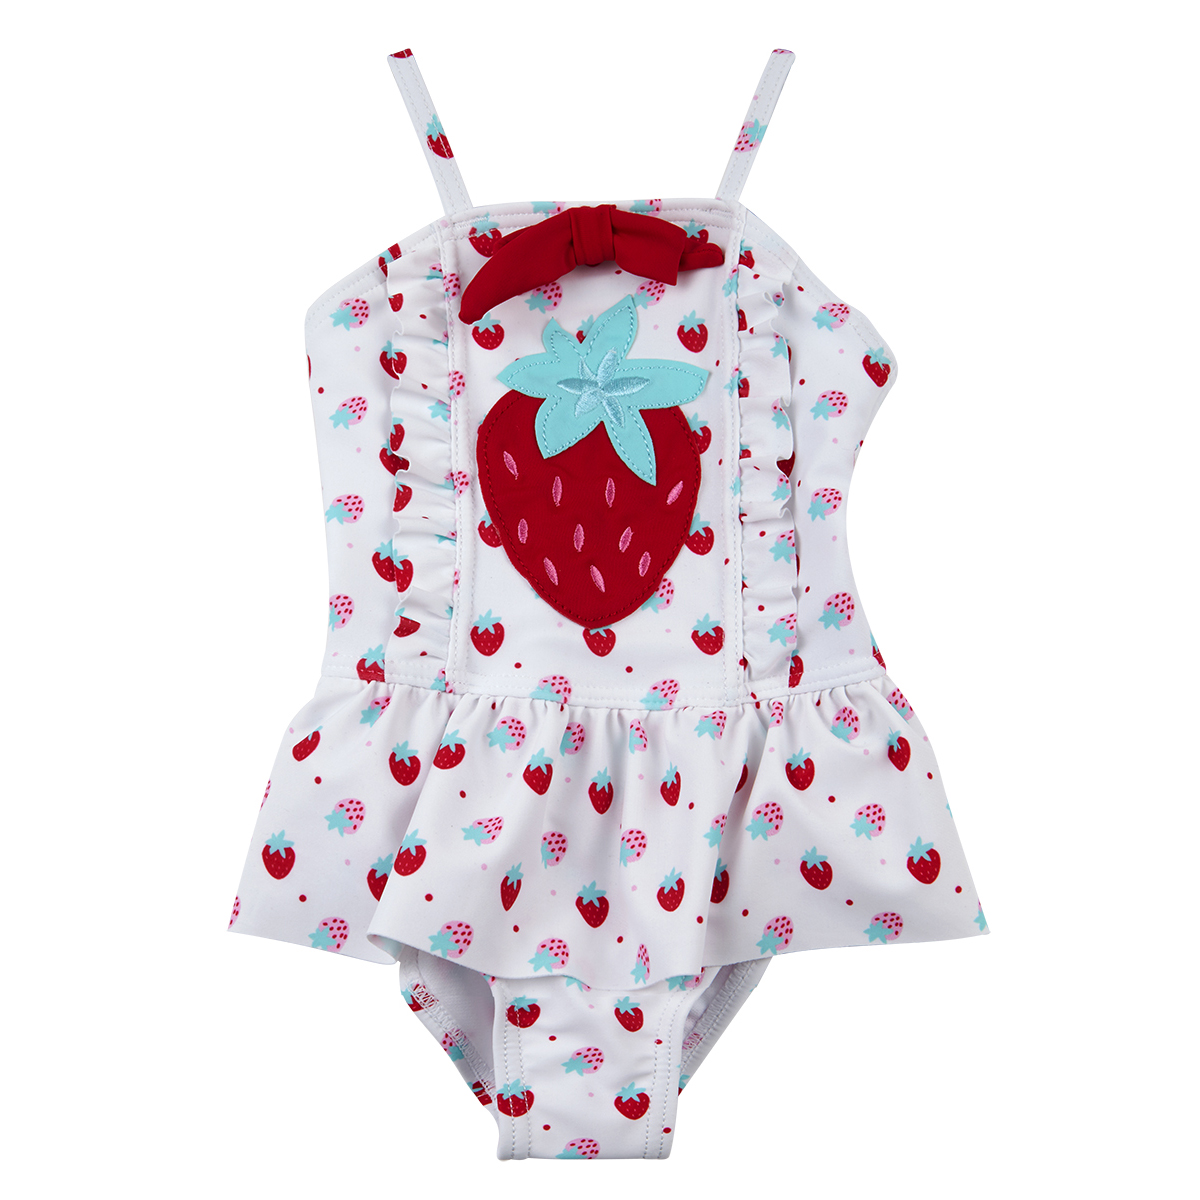 Baby Girls Toddler Swimming Costume Swimwear 3-24 Months Strawberry By BABYTOWN  sc 1 st  eBay : baby swimming costumes  - Germanpascual.Com